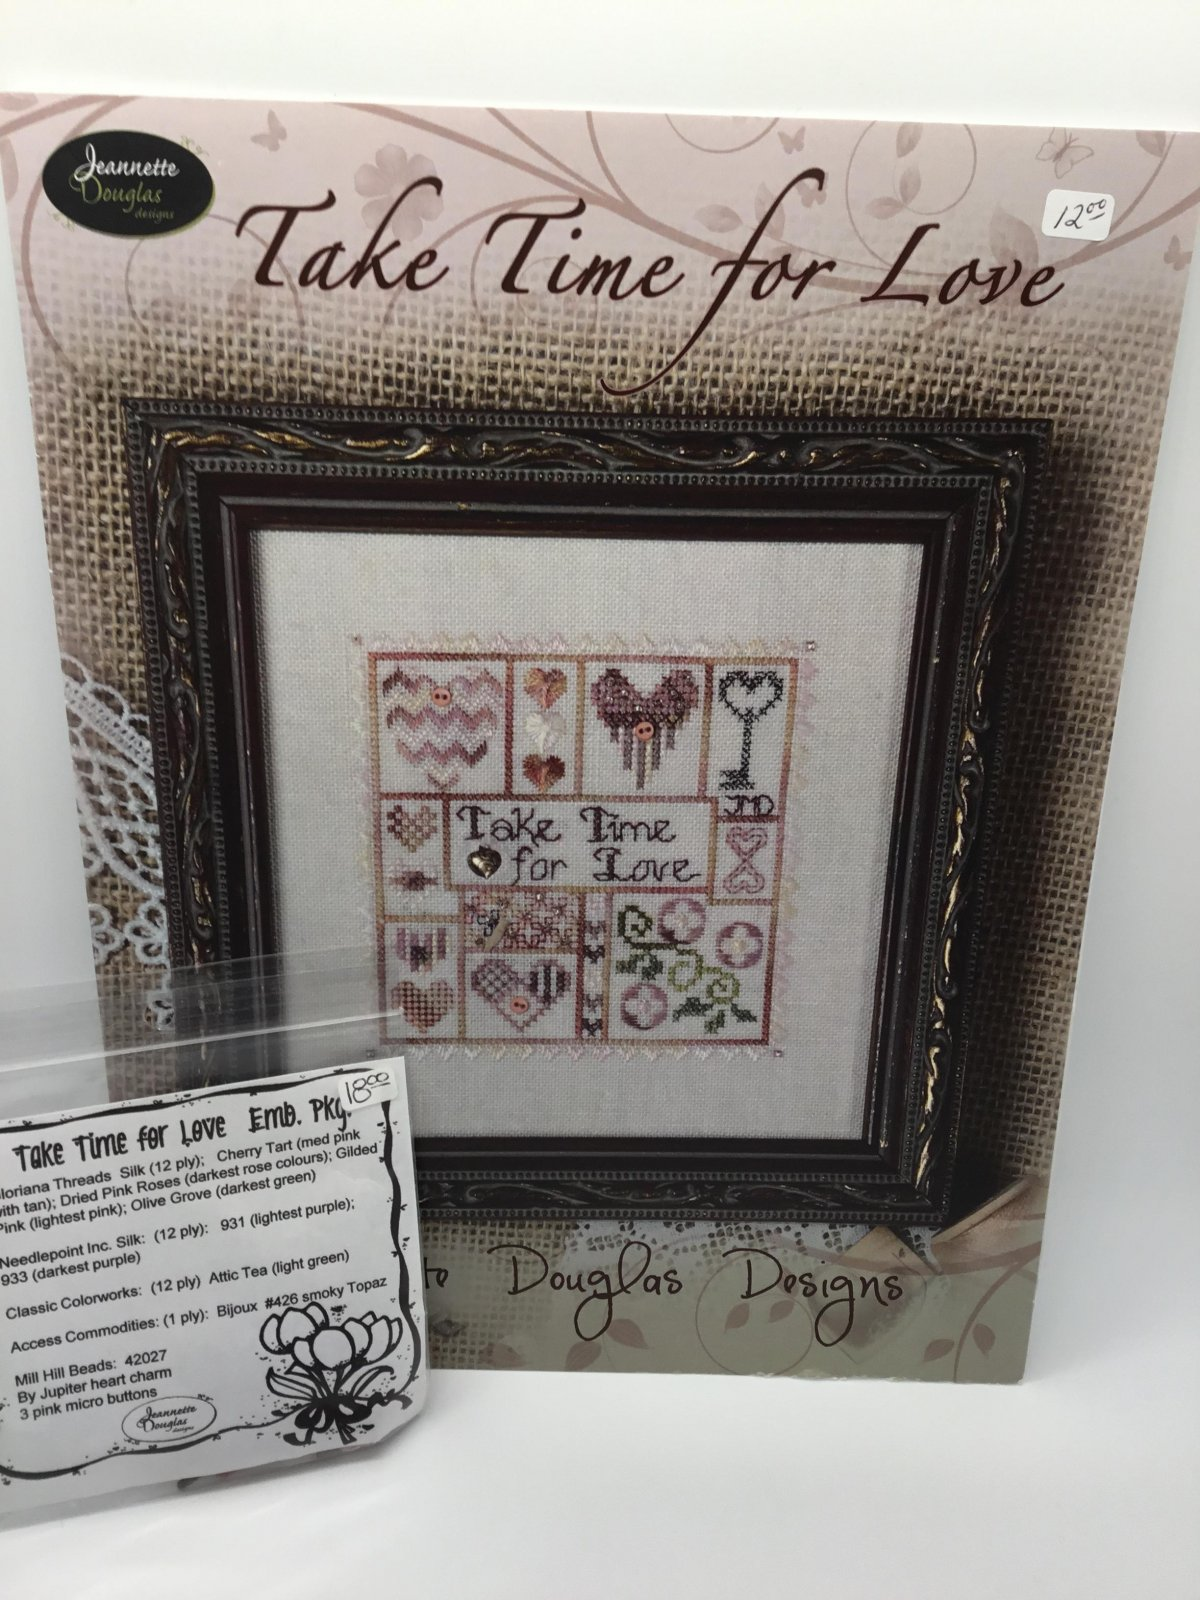 Take Time for Love with Emb. package